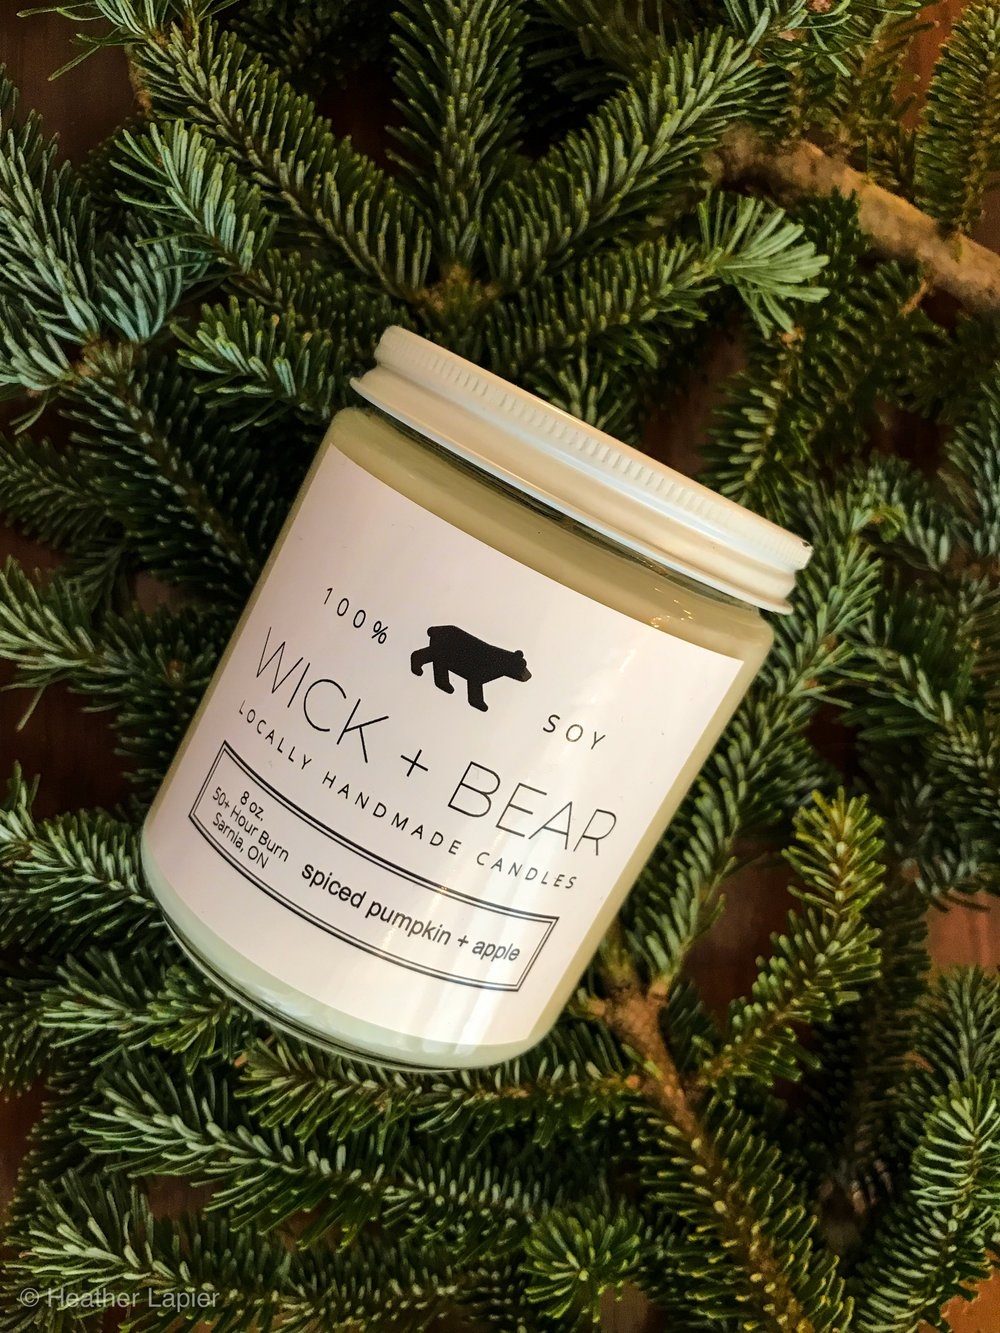 WICK&BEAR CANDLE  - $18 Spiced Pumpkin & Apple Soy candle lead free wax reusable glass container, made locally.